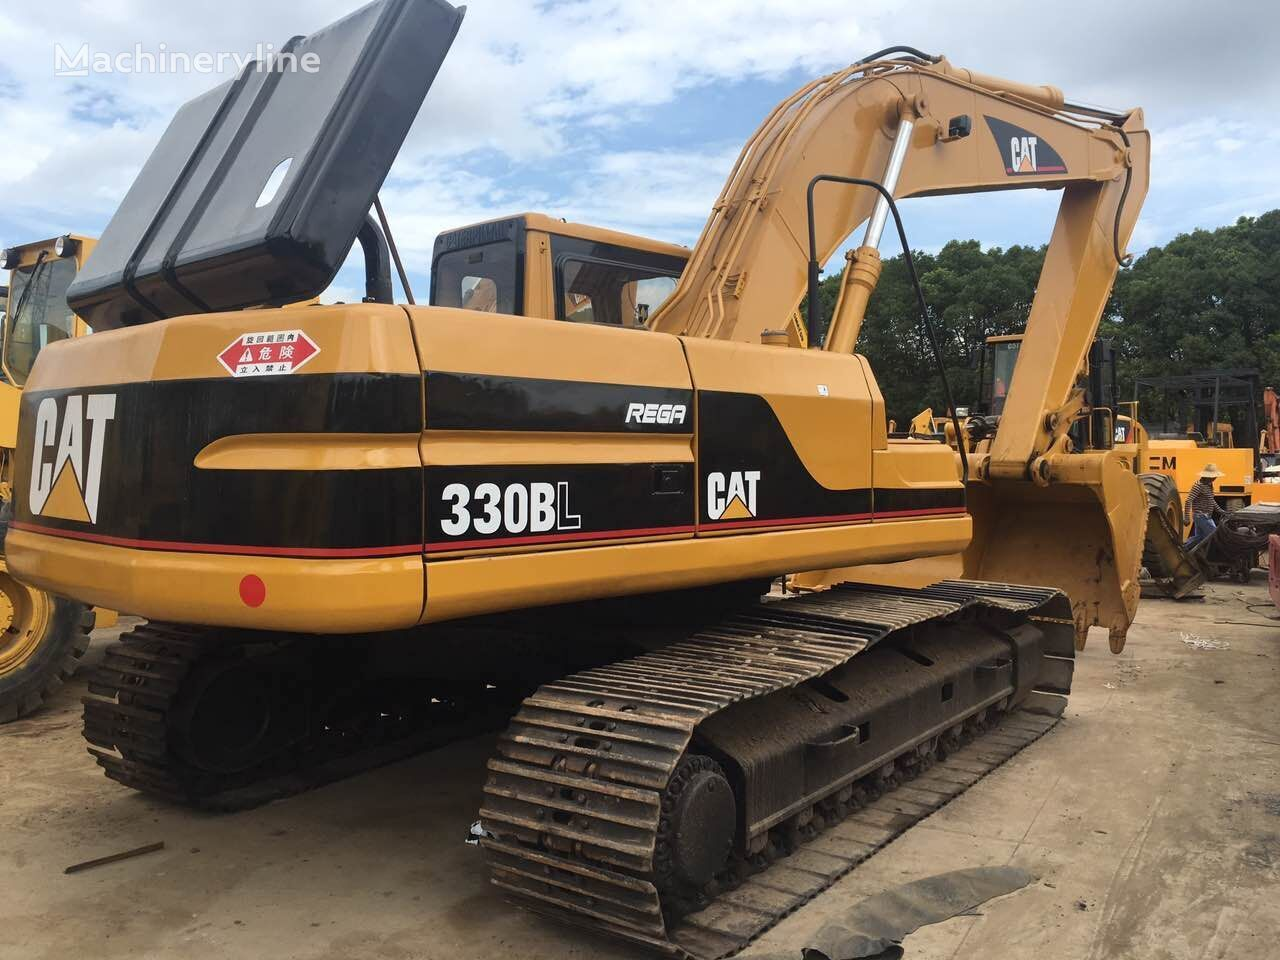 CATERPILLAR 330B tracked excavator